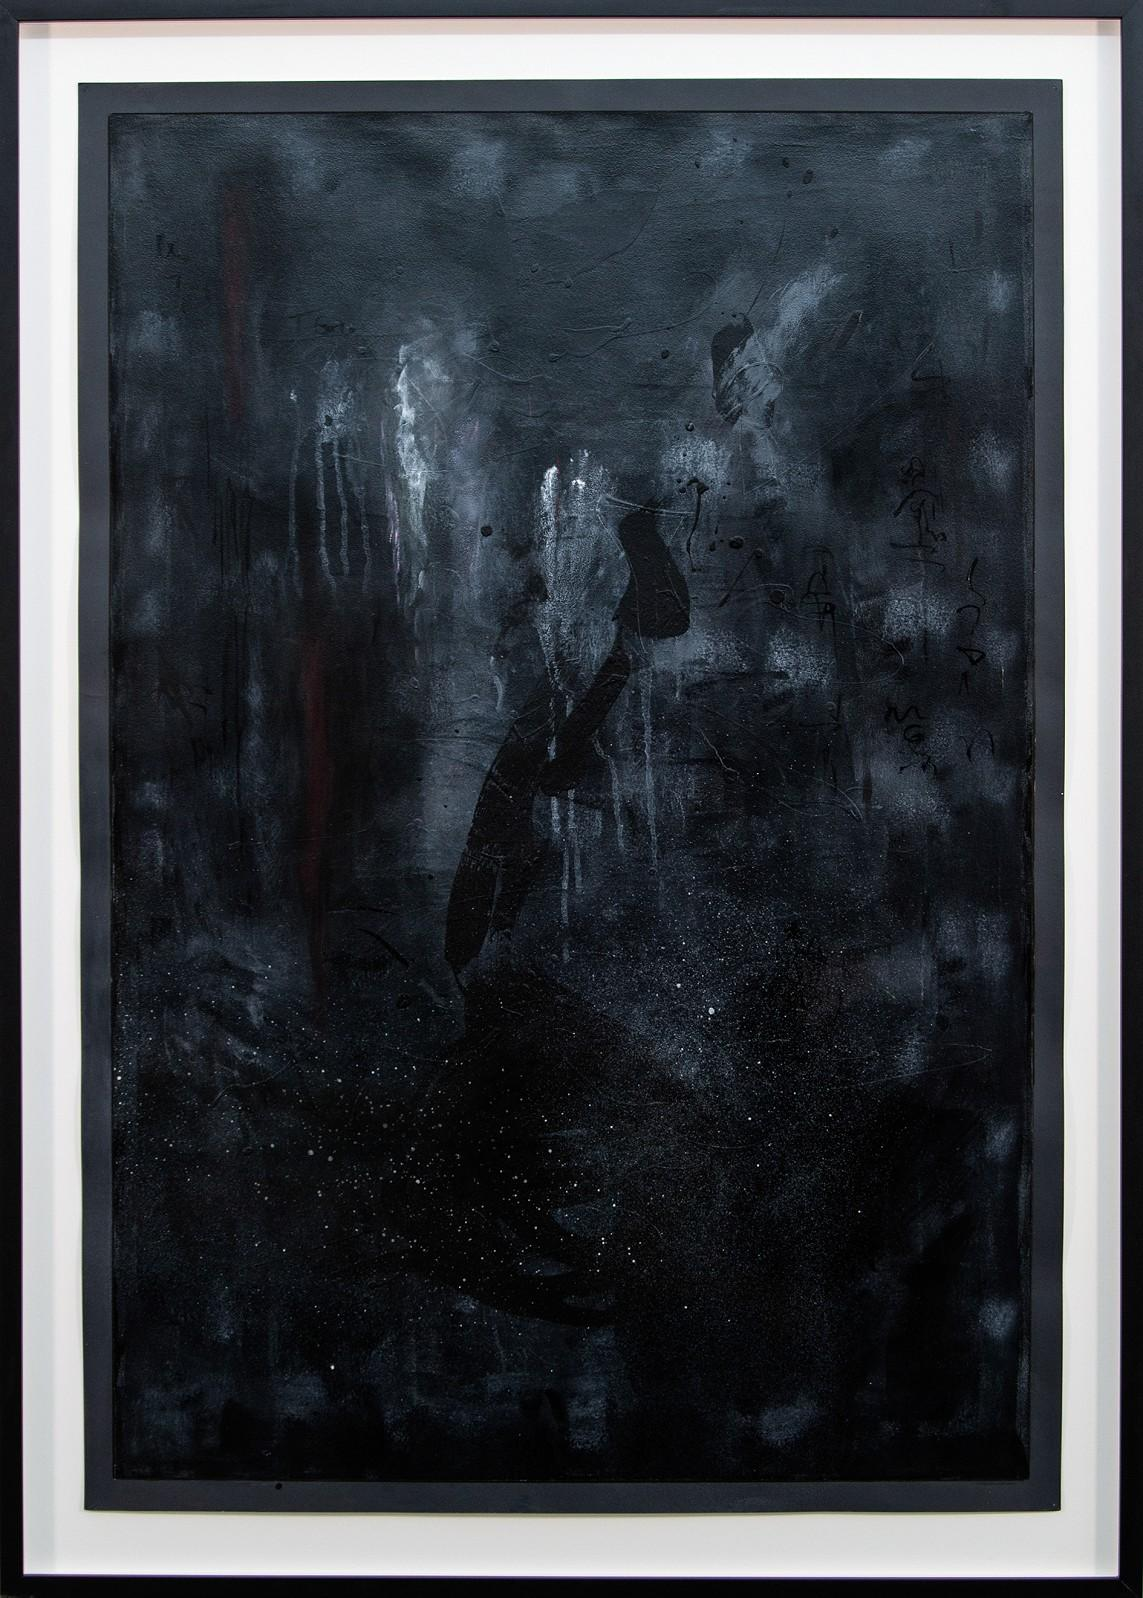 Forest at Night - large, dark, smokey, gestural, atmospheric acrylic on paper